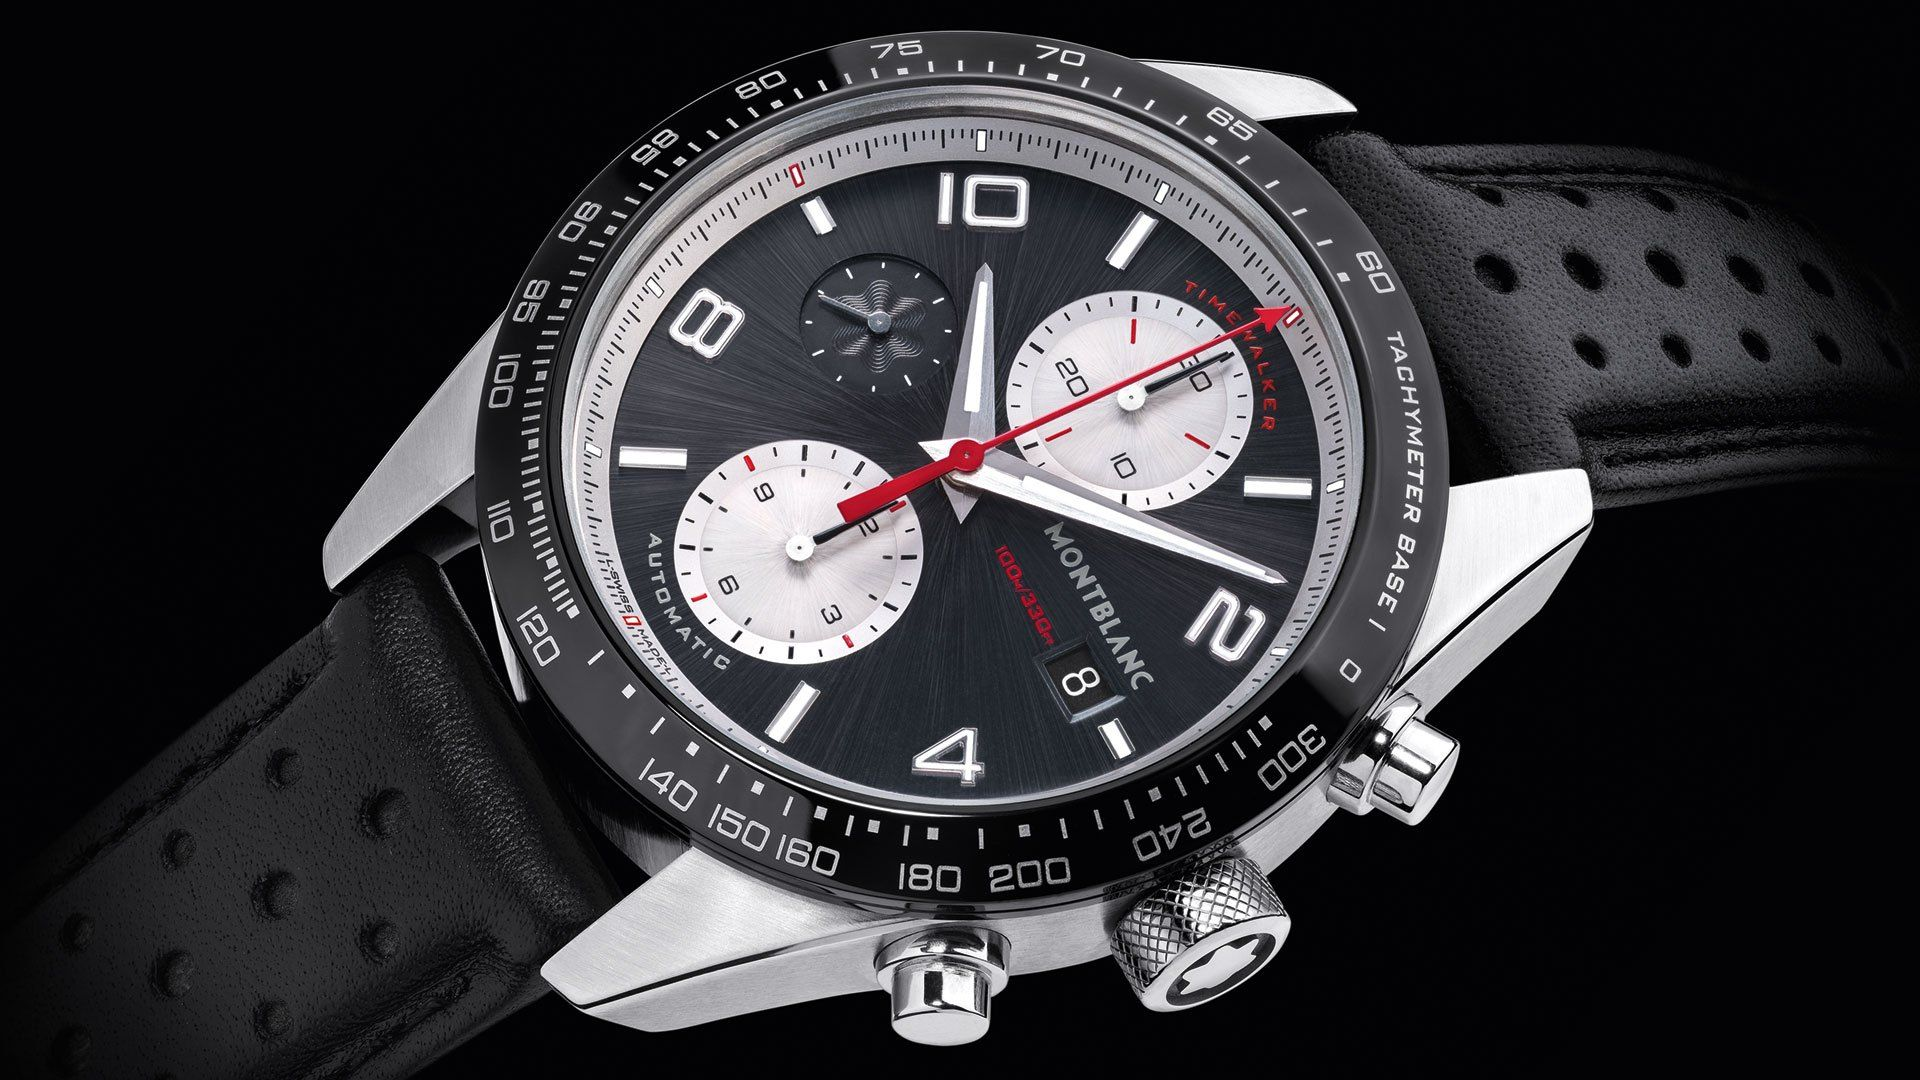 c7ff6cec6fb Montblanc TimeWalker Automatic Chronograph Watch For 2019 | Private ...